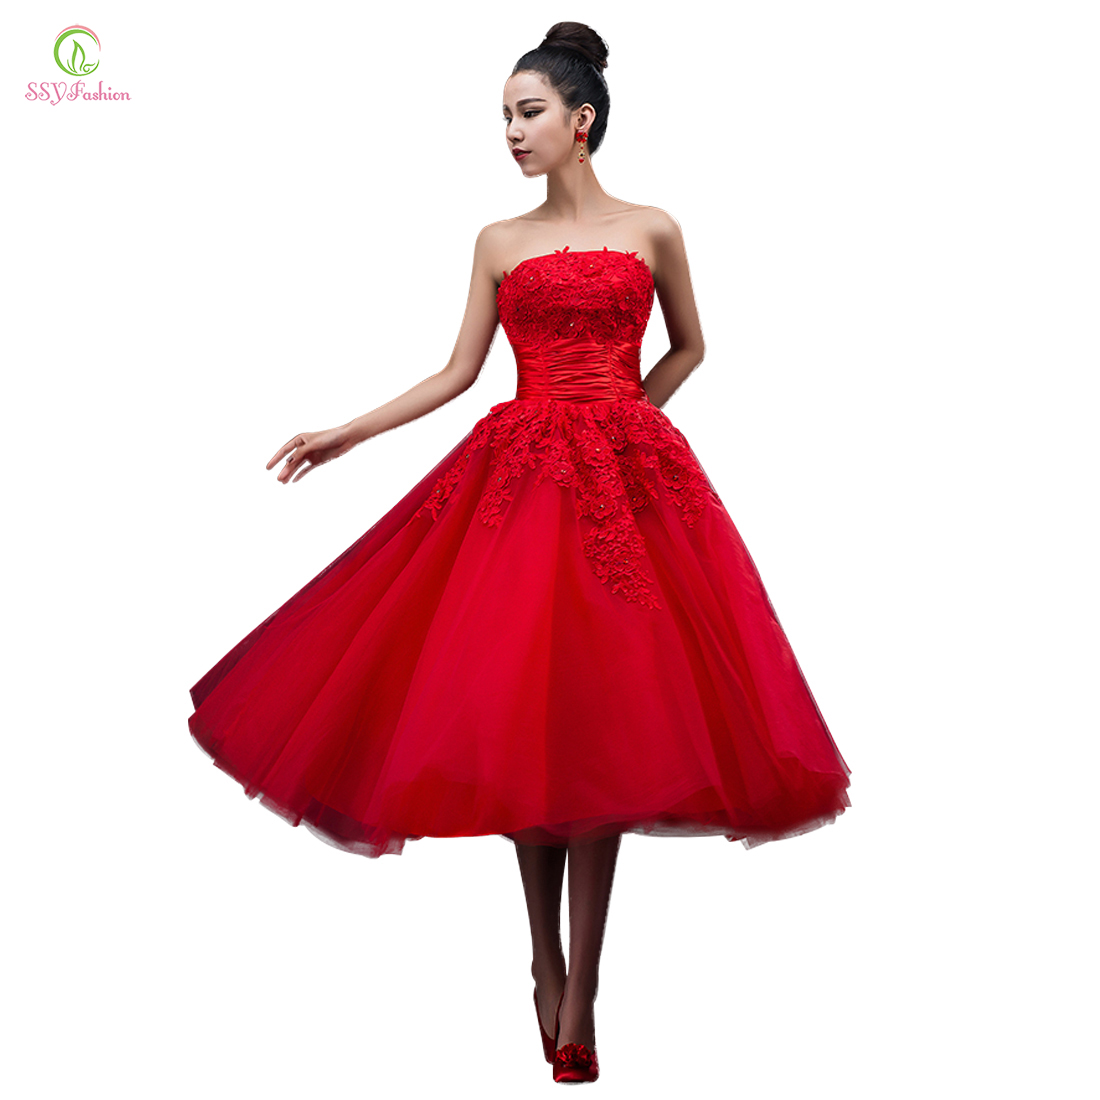 Aliexpress Buy Evening Dress 2015 New Arrival Red